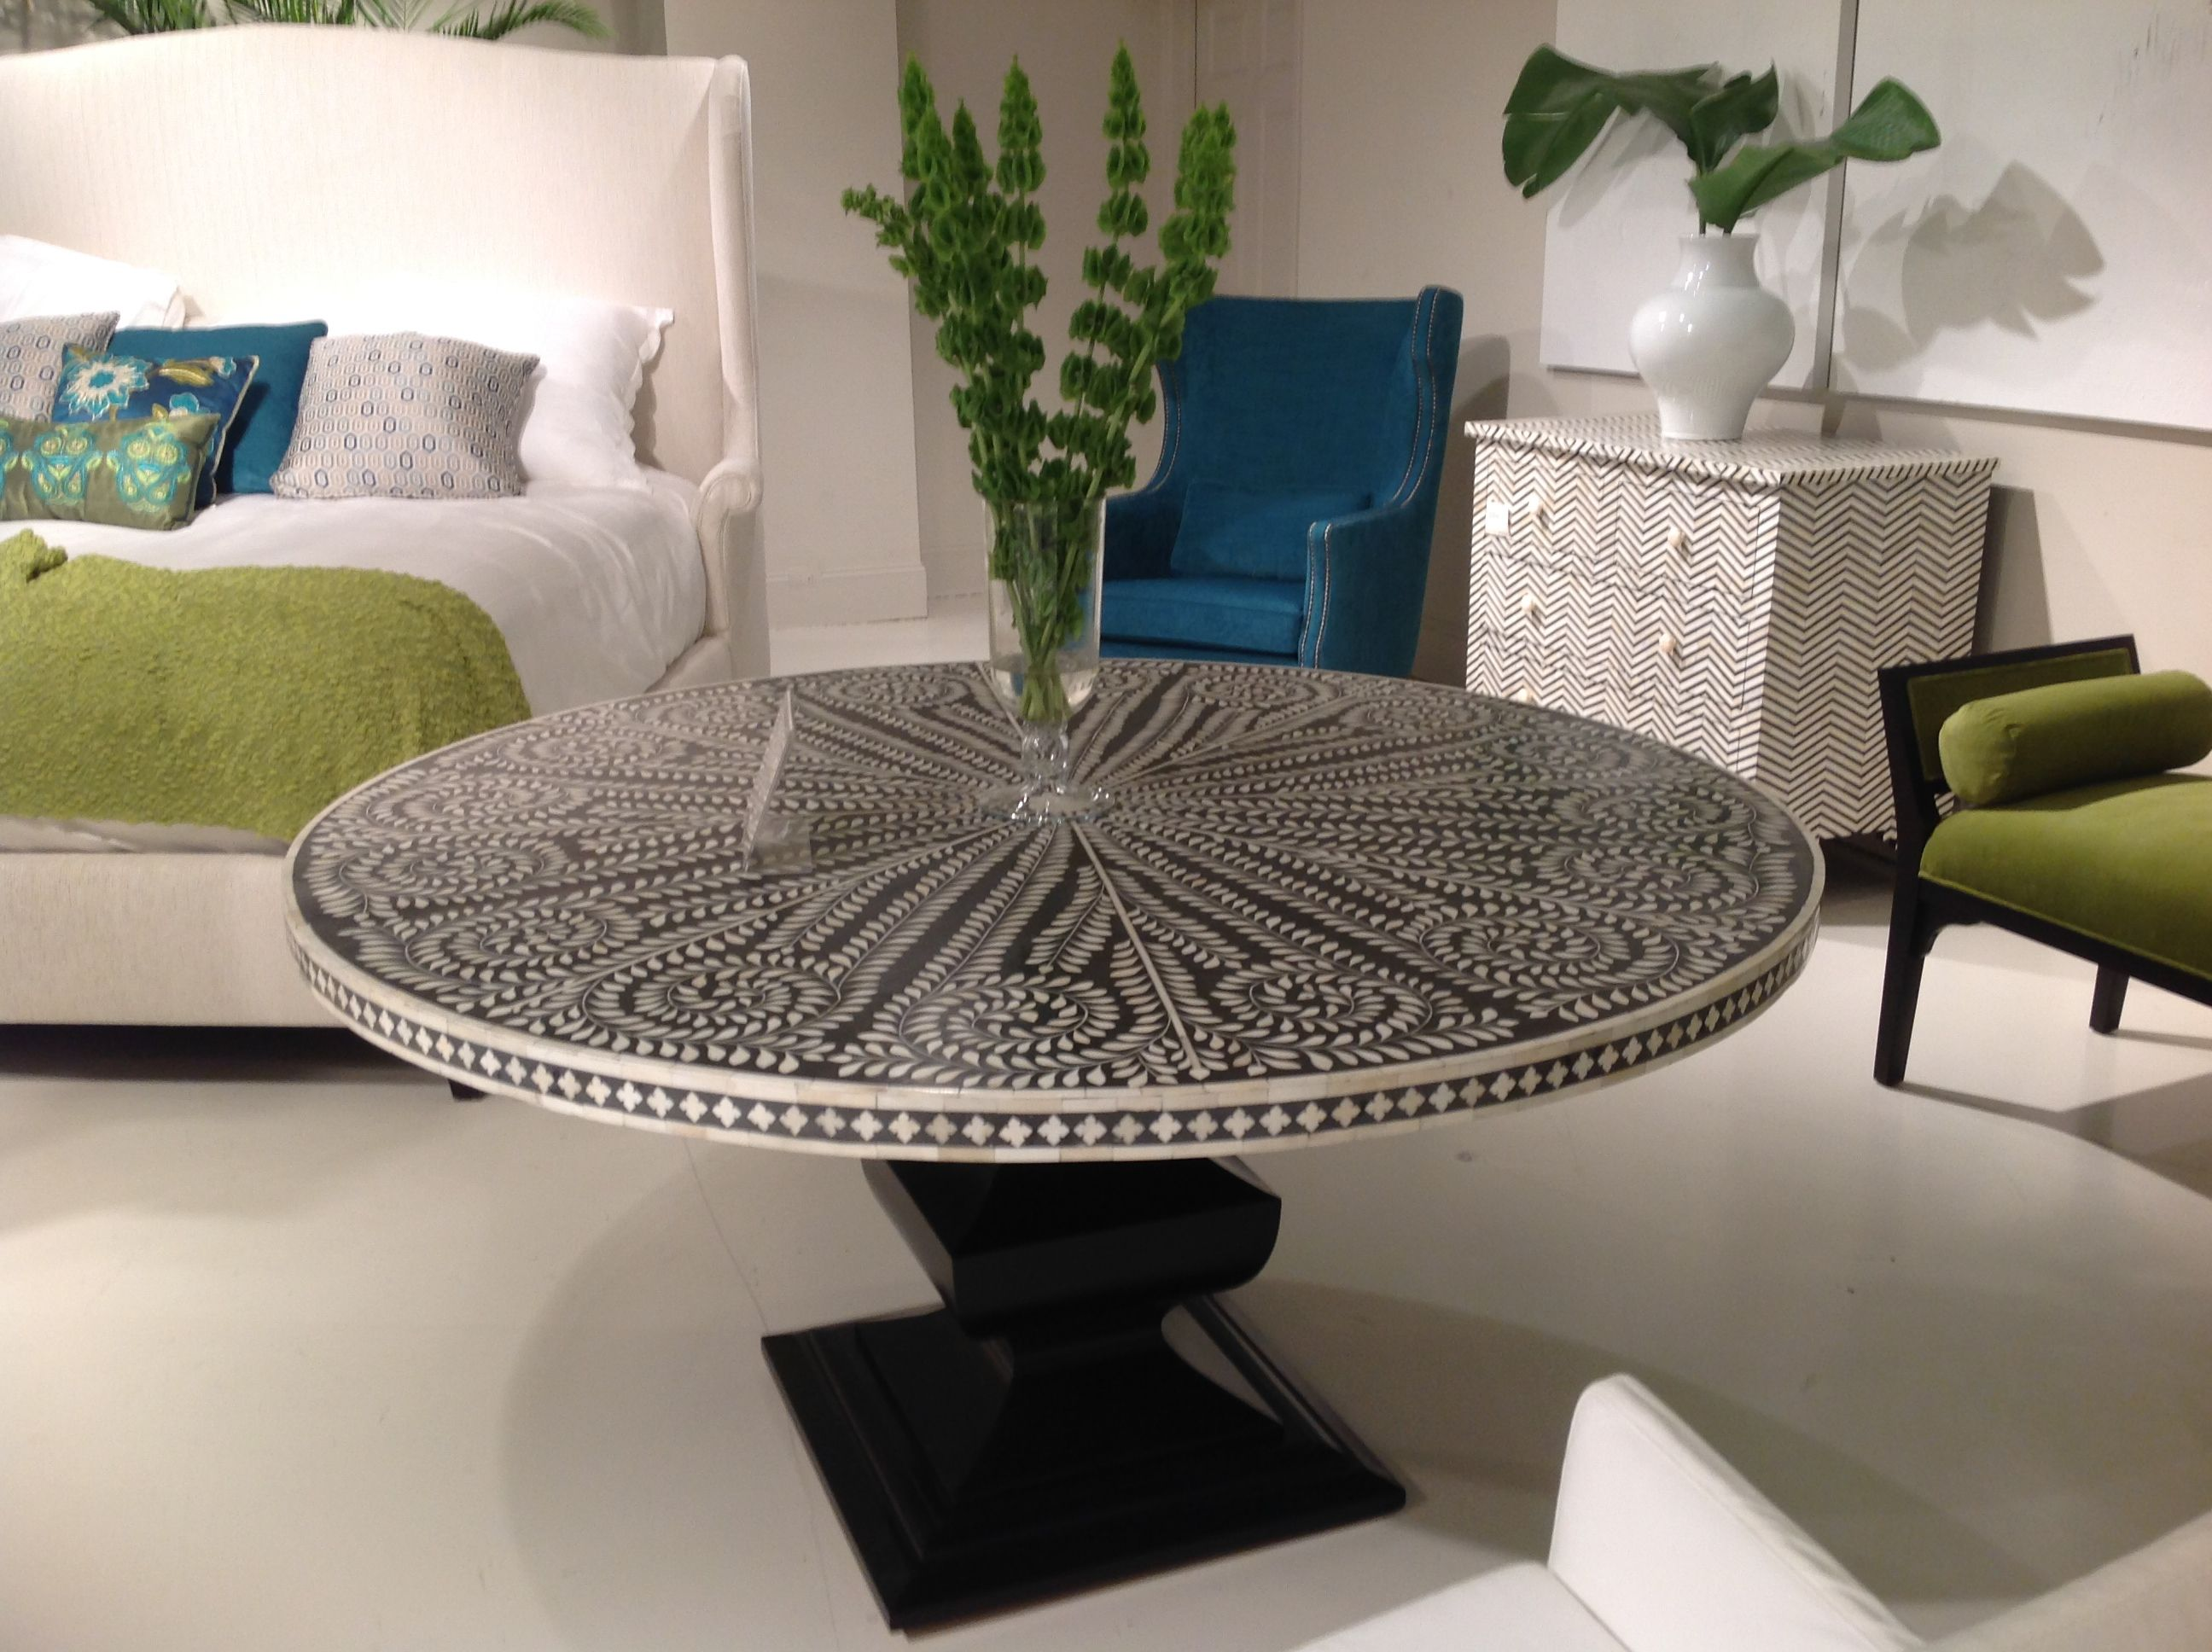 bernhardt interiors inlay black and white table